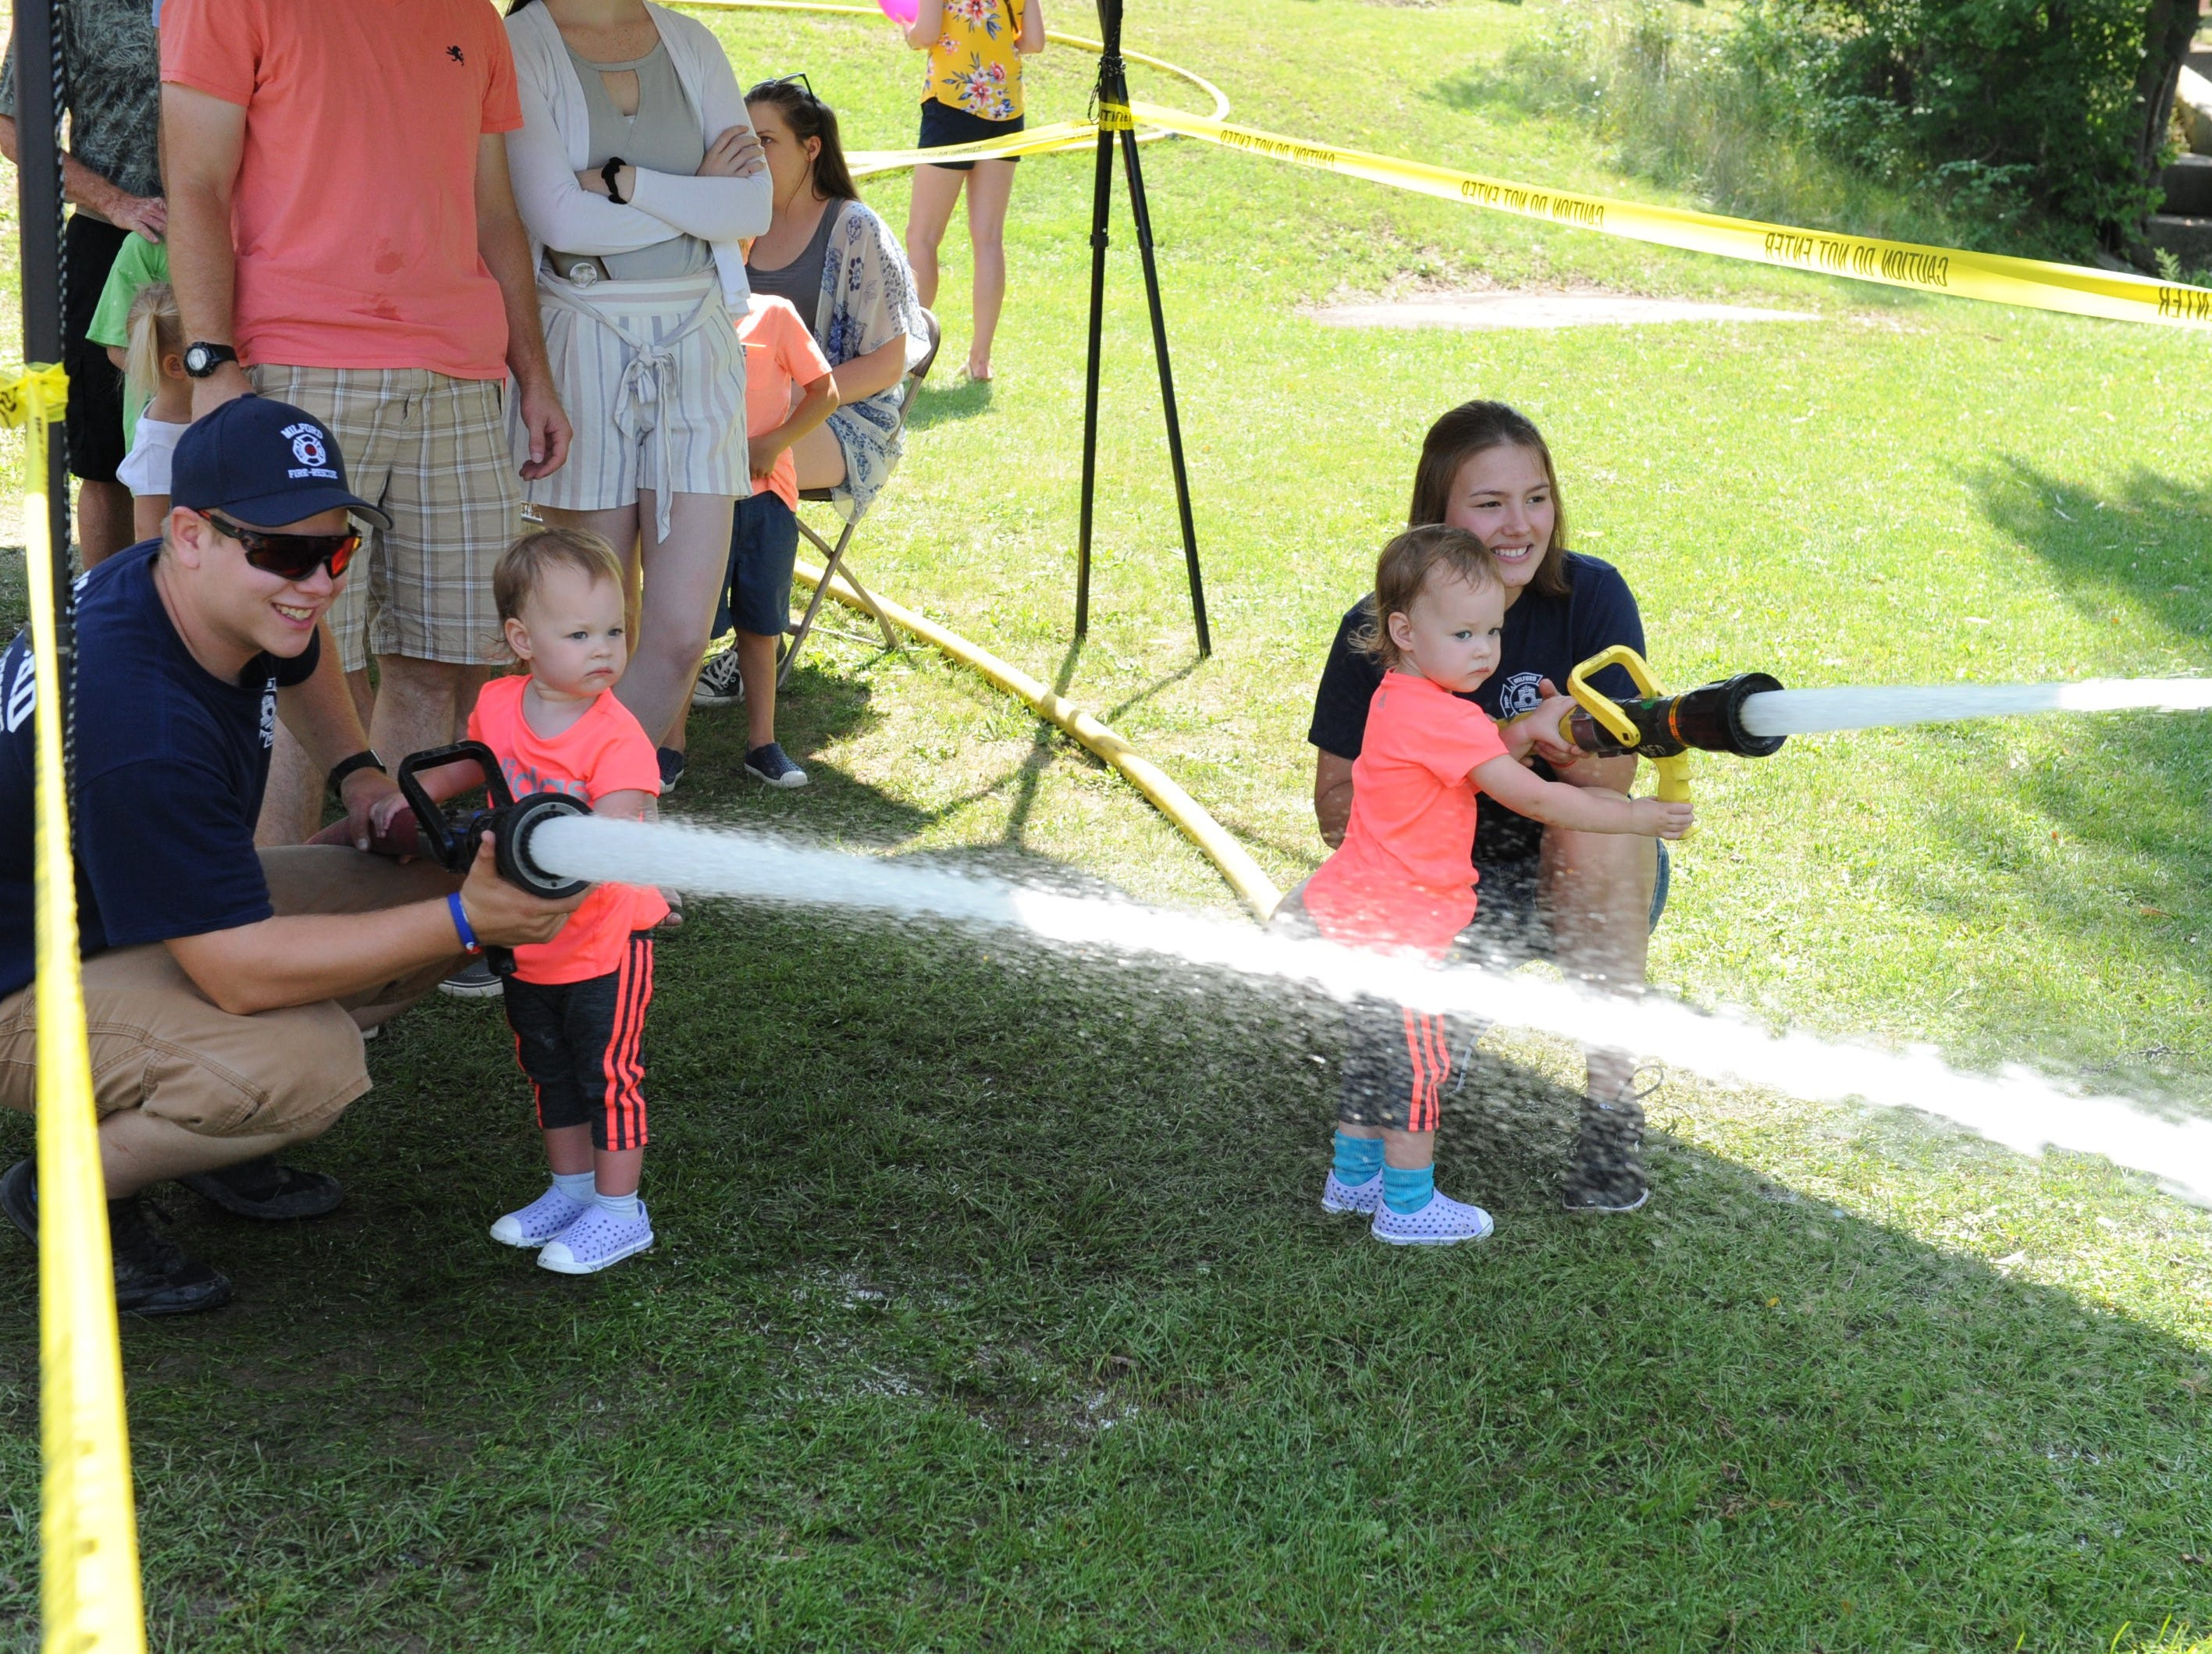 Milford Firefighter John Siekierka, twin sisters, Cecilia and Renee Dreslinski and Cadet McKenzie Chappell work the fire hoses at Milford Memories.